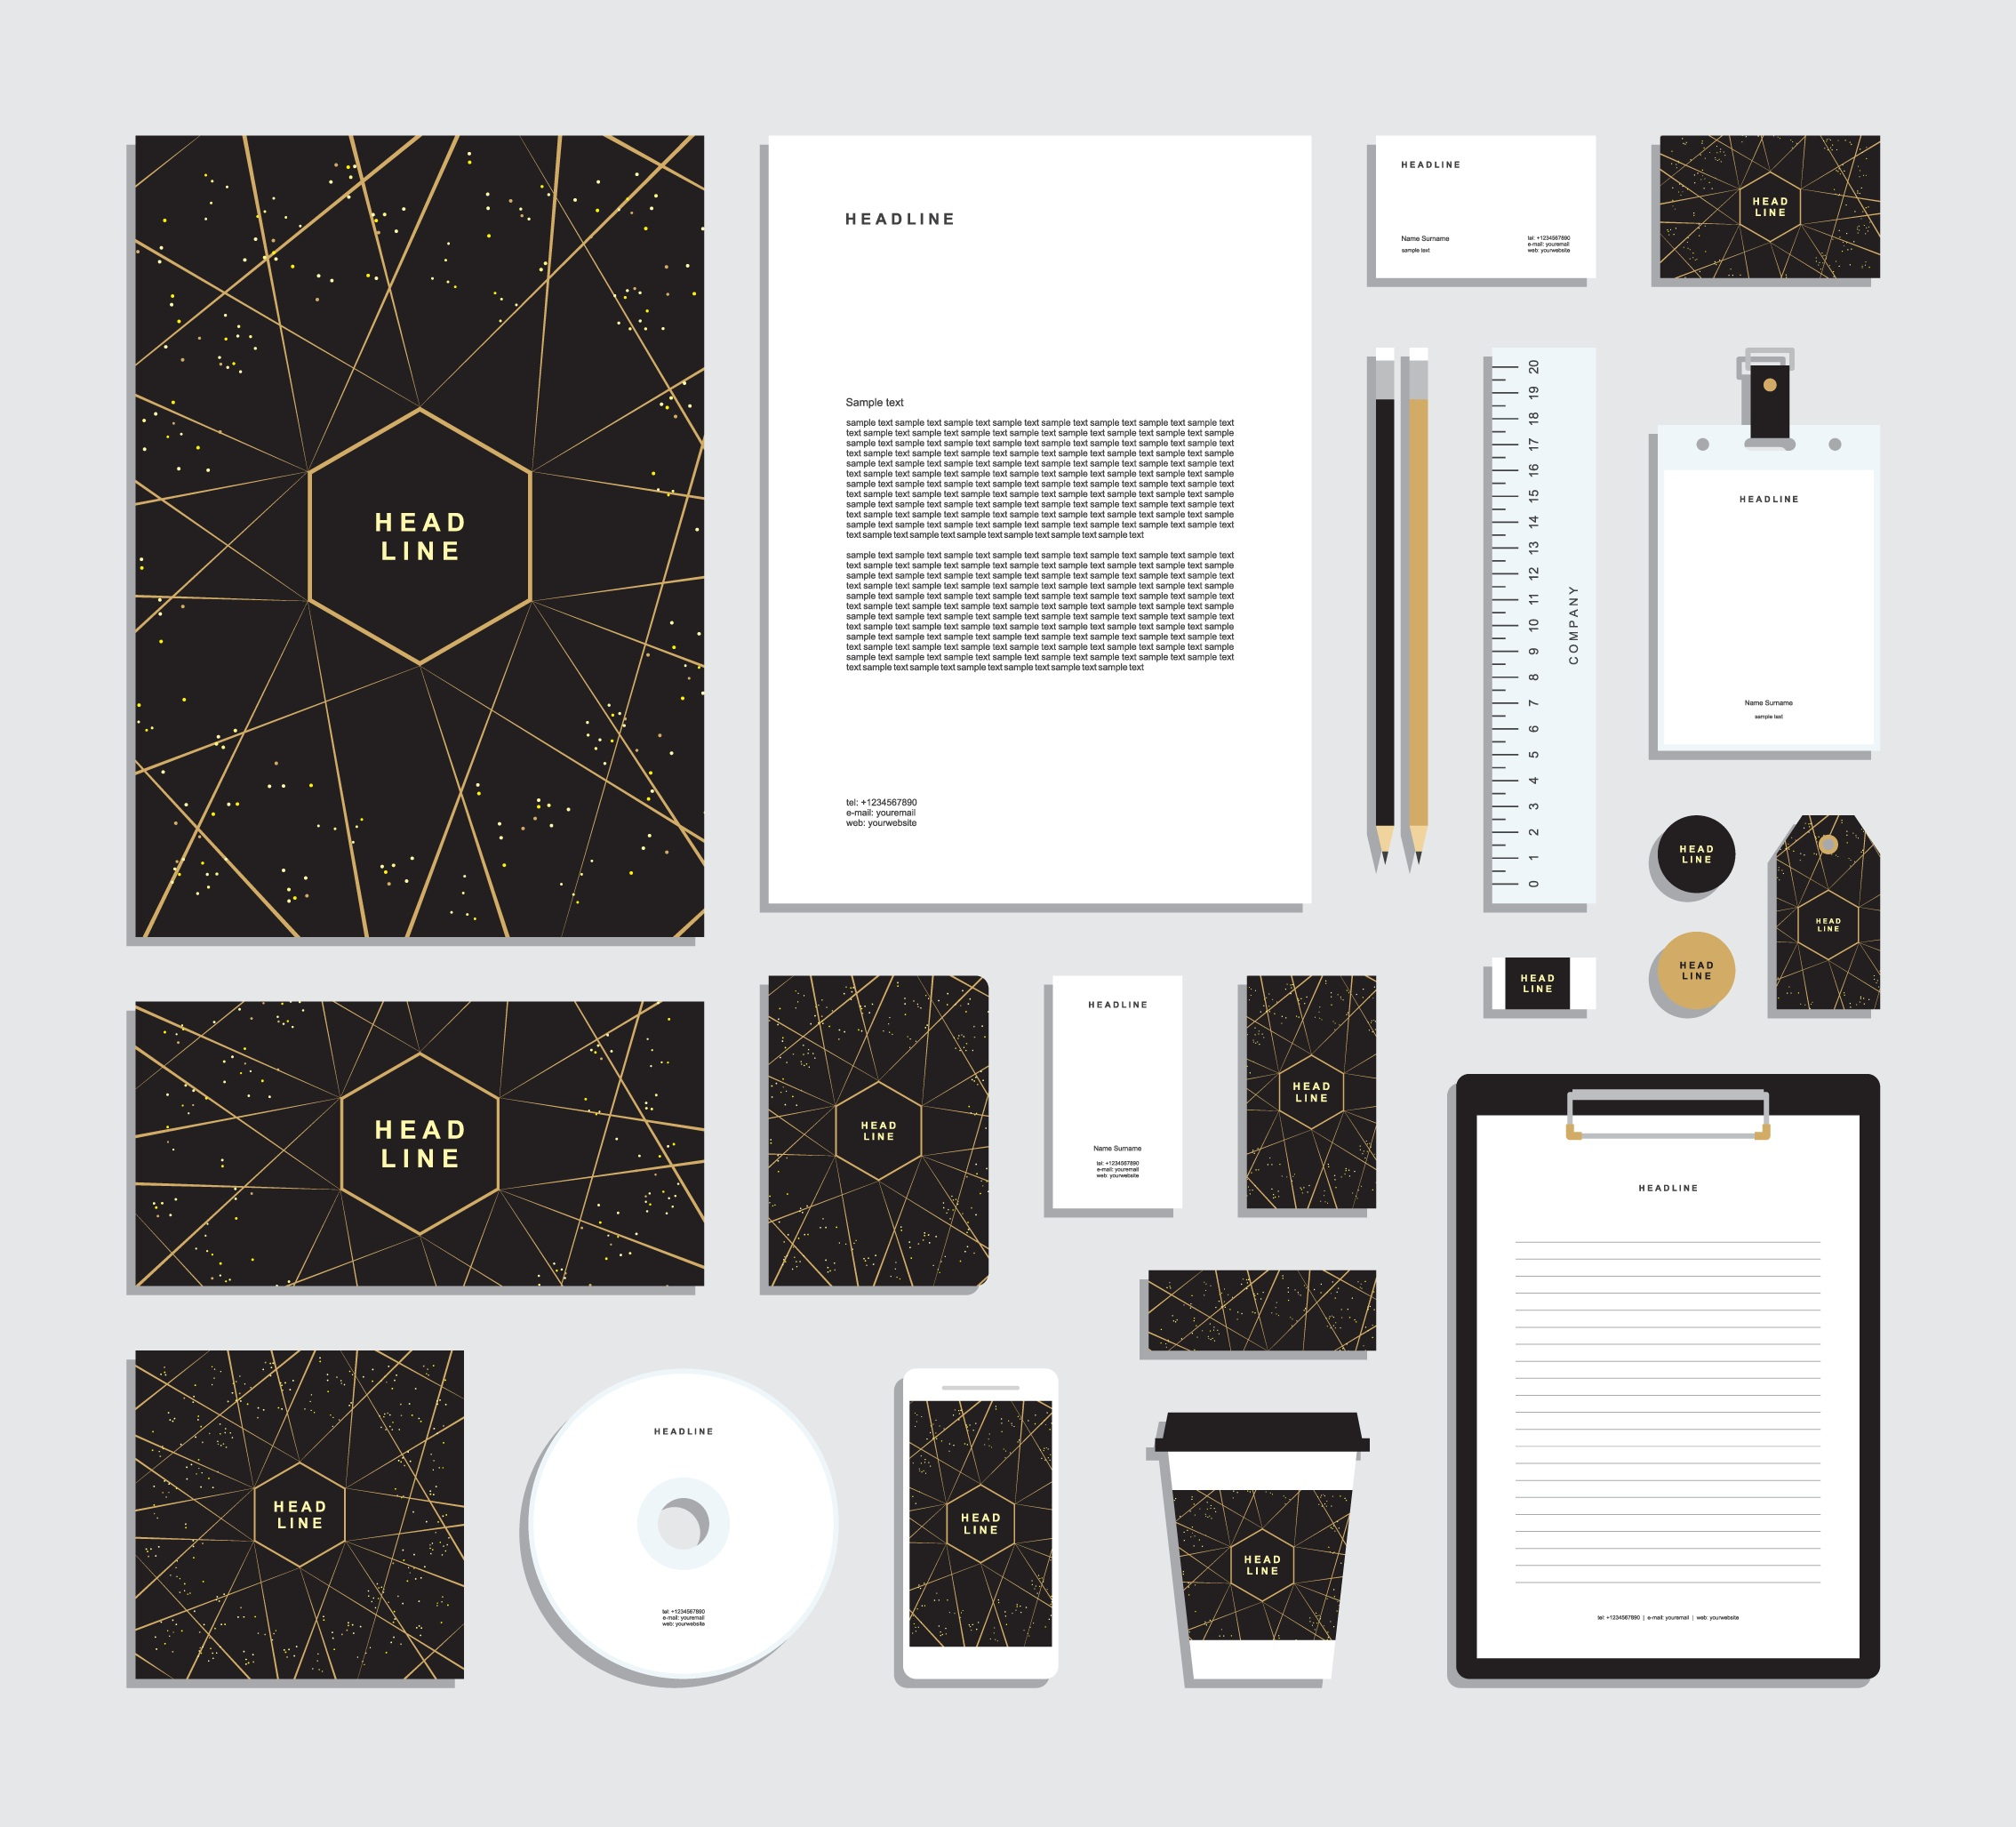 The EMMS Branding Services